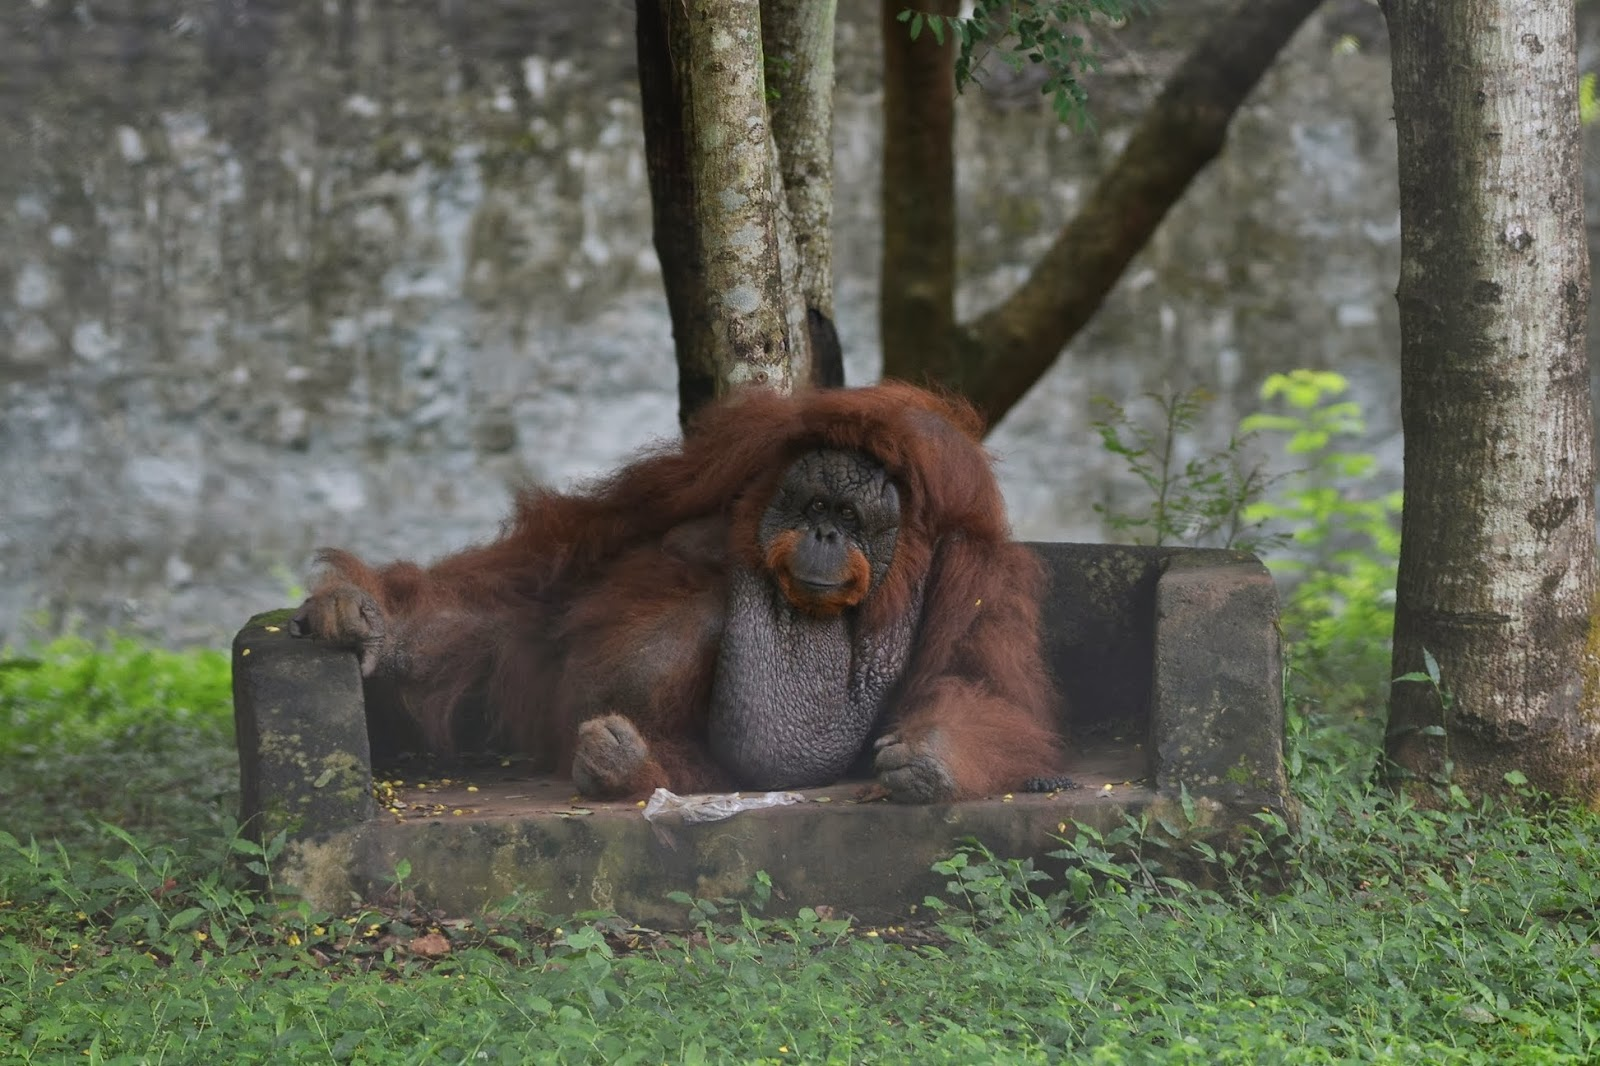 Orangutan at Nandankanan zoological park